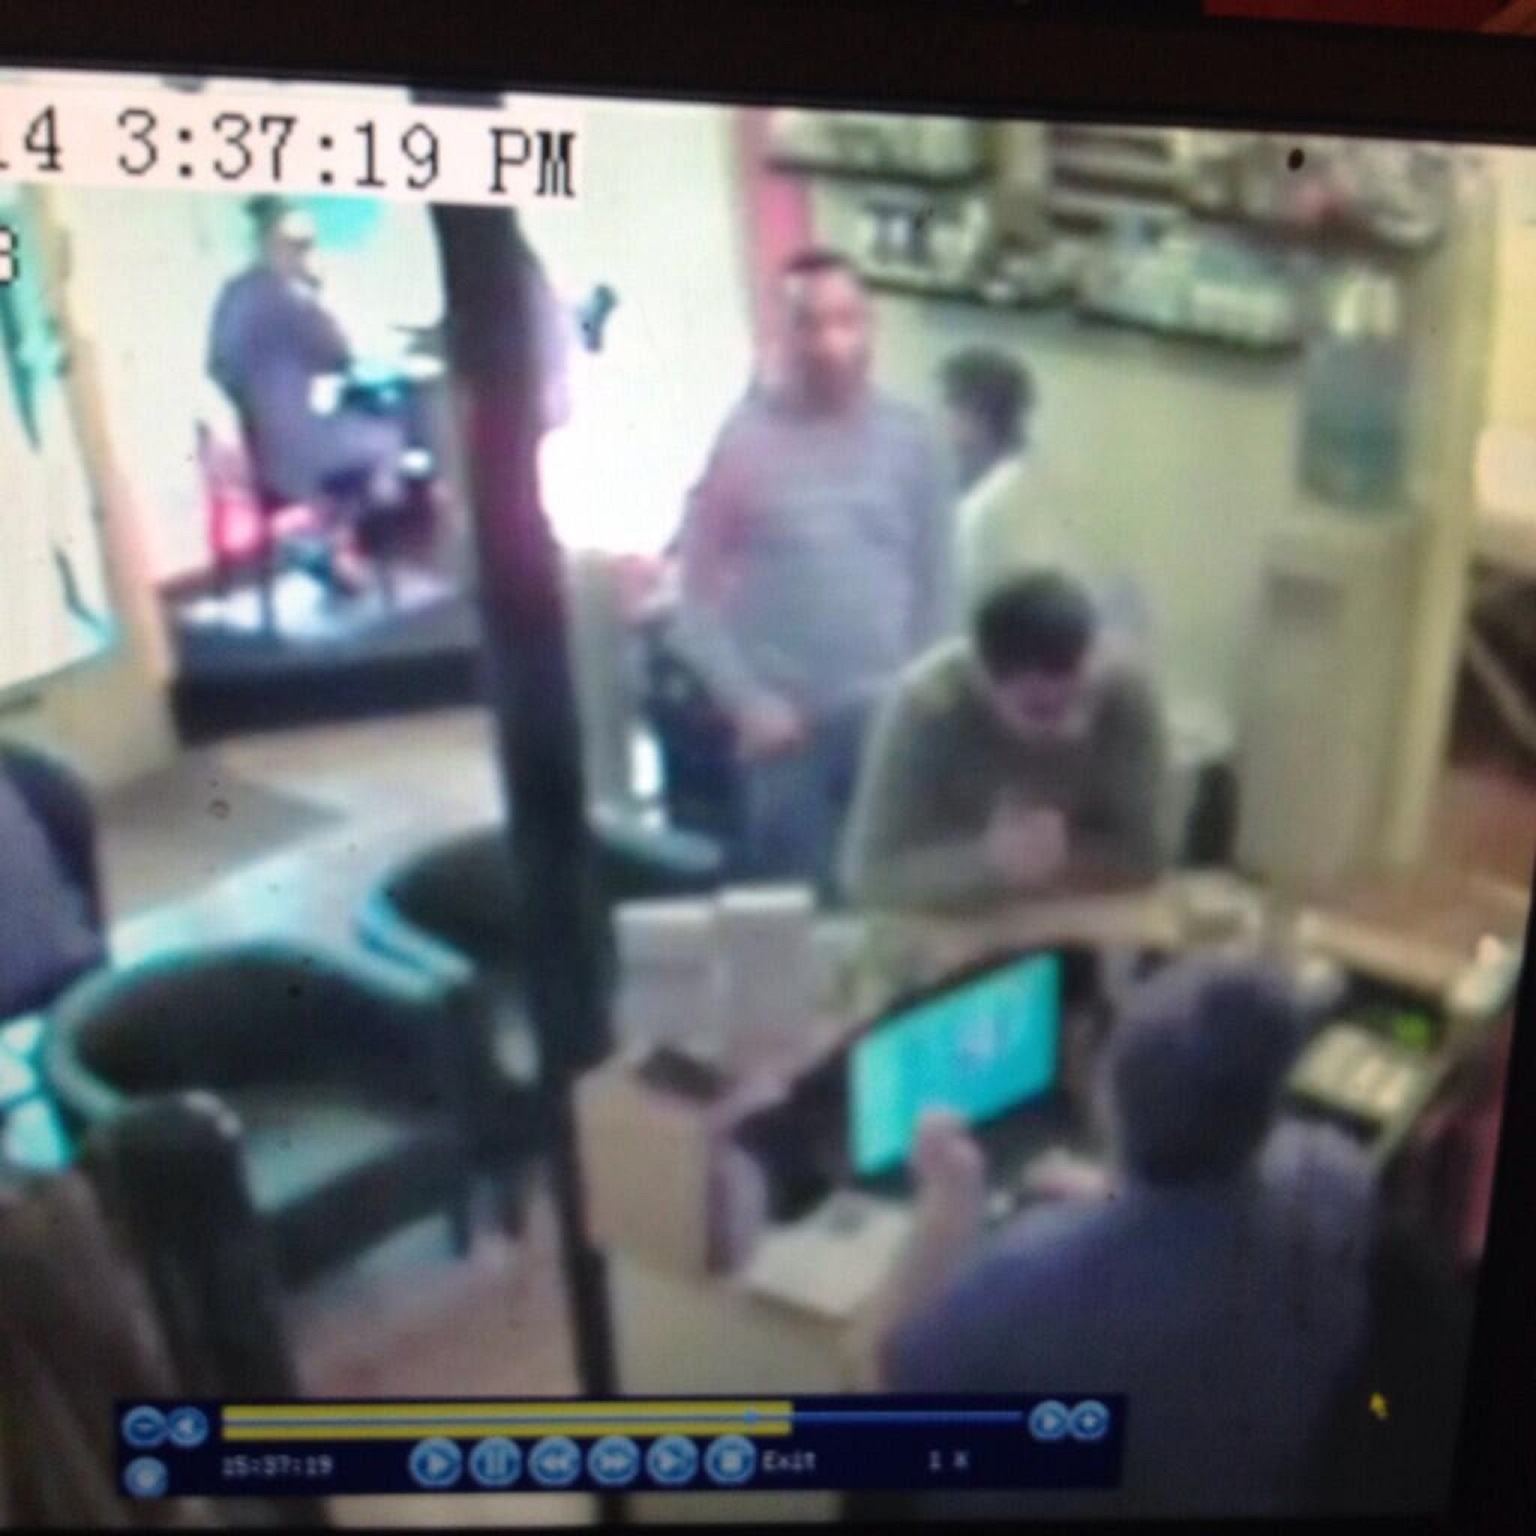 Video: Nail bar owner posts CCTV footage online after phone theft